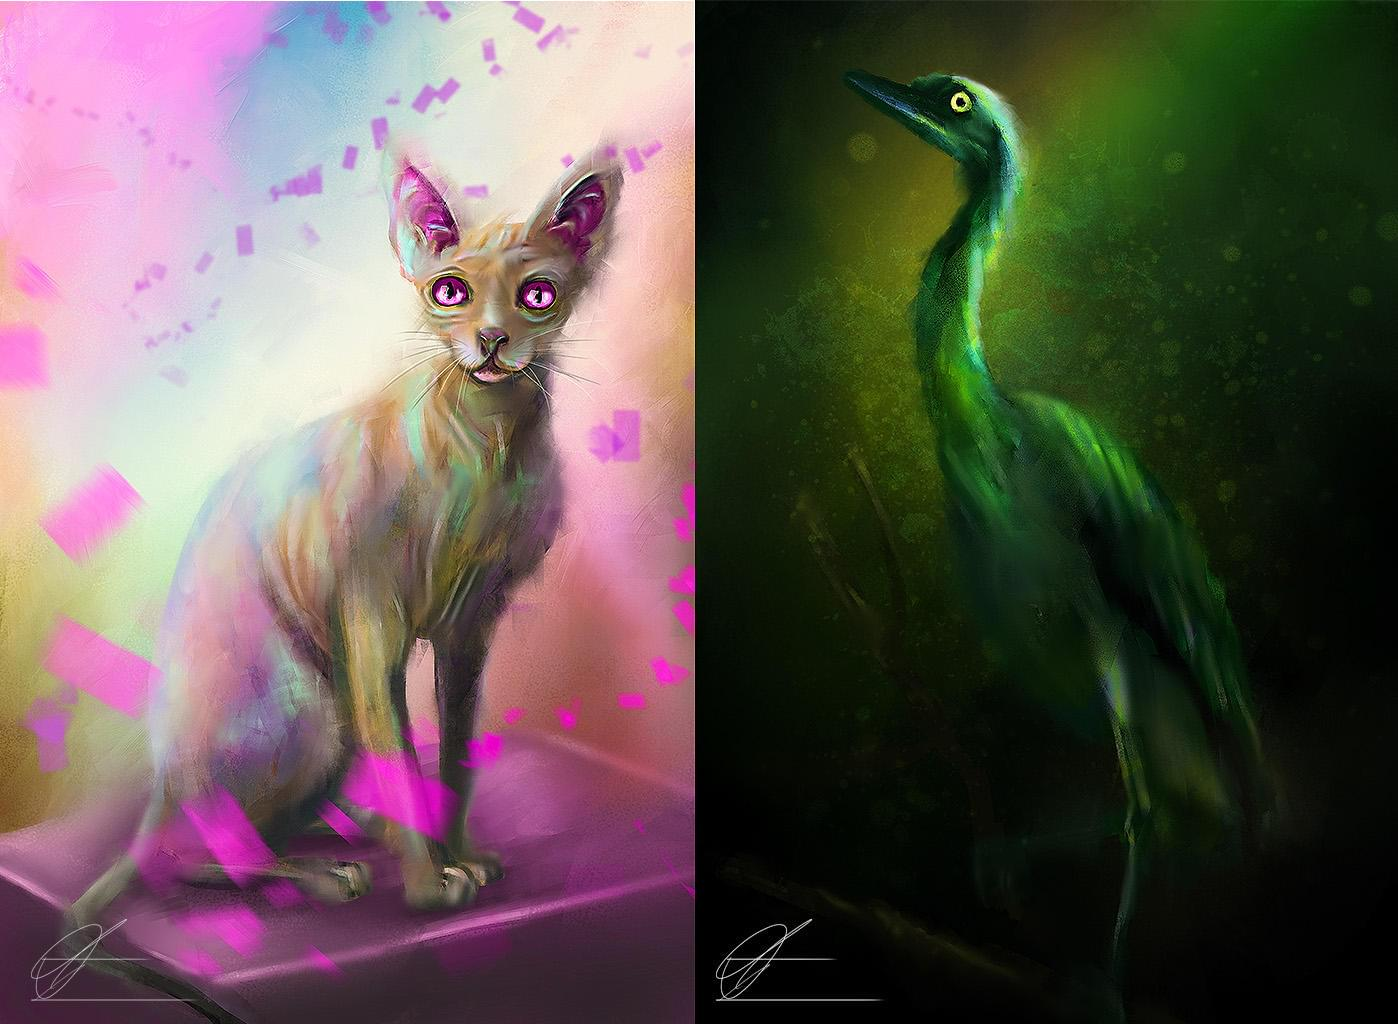 Artistic Style - Digital Painting - Wildlife, Pets, Portraits - Free Style Painting Service by CrArt - 111249